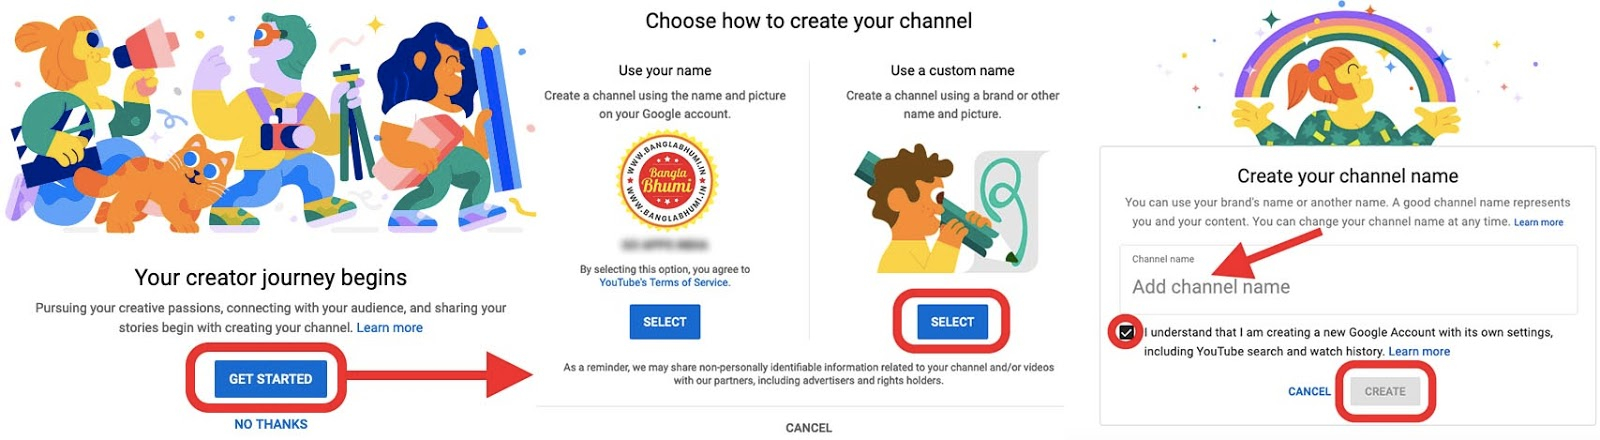 How to Create Youtube Channel - Step 3